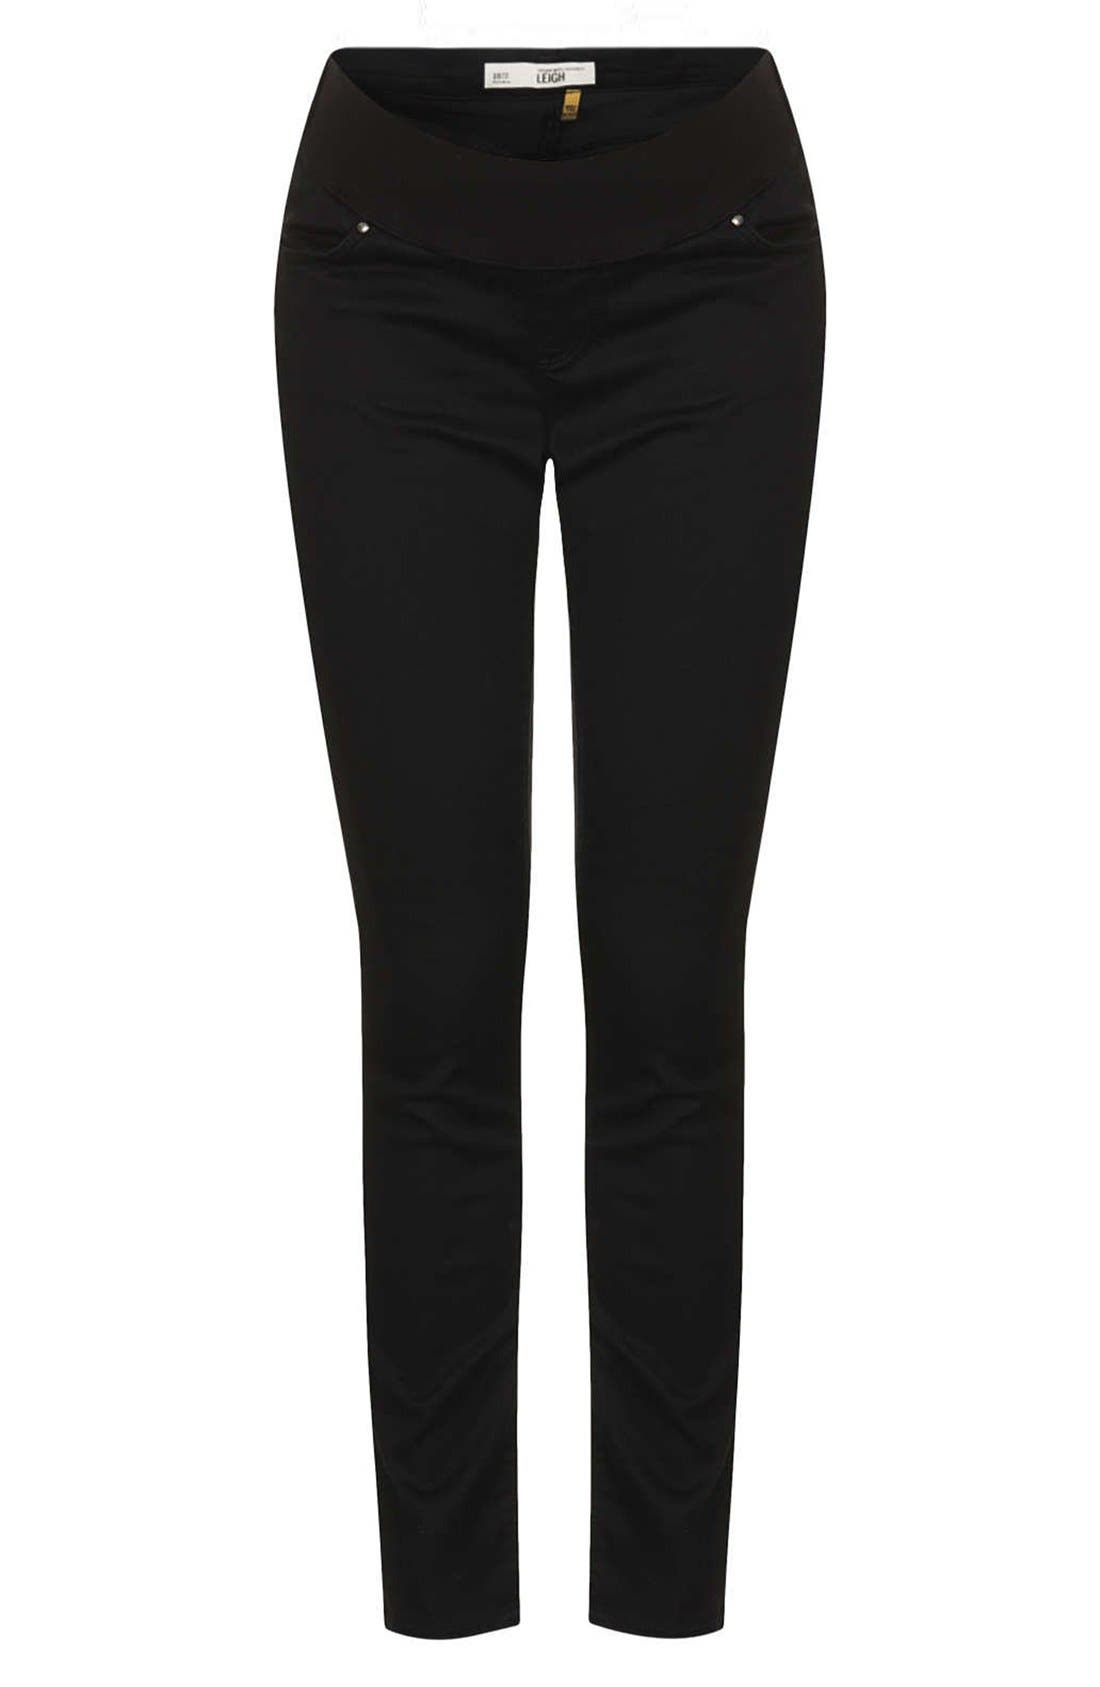 'Leigh' Maternity Jeans,                         Main,                         color, Black